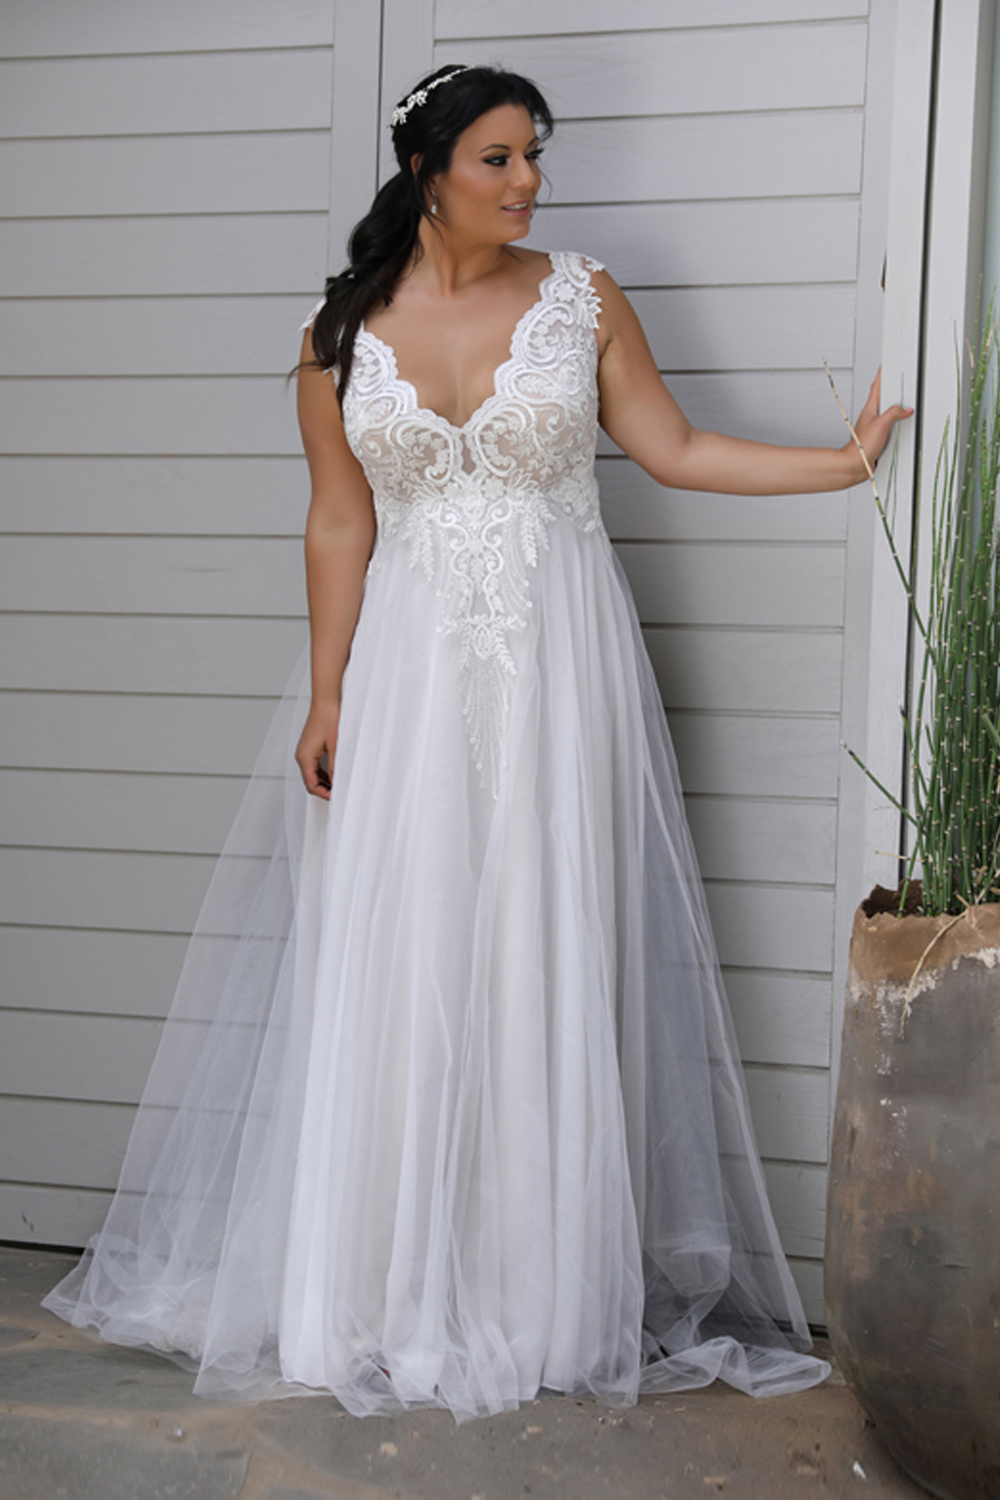 Top 10 plus size wedding dresses australia sang maestro for What is my wedding dress size